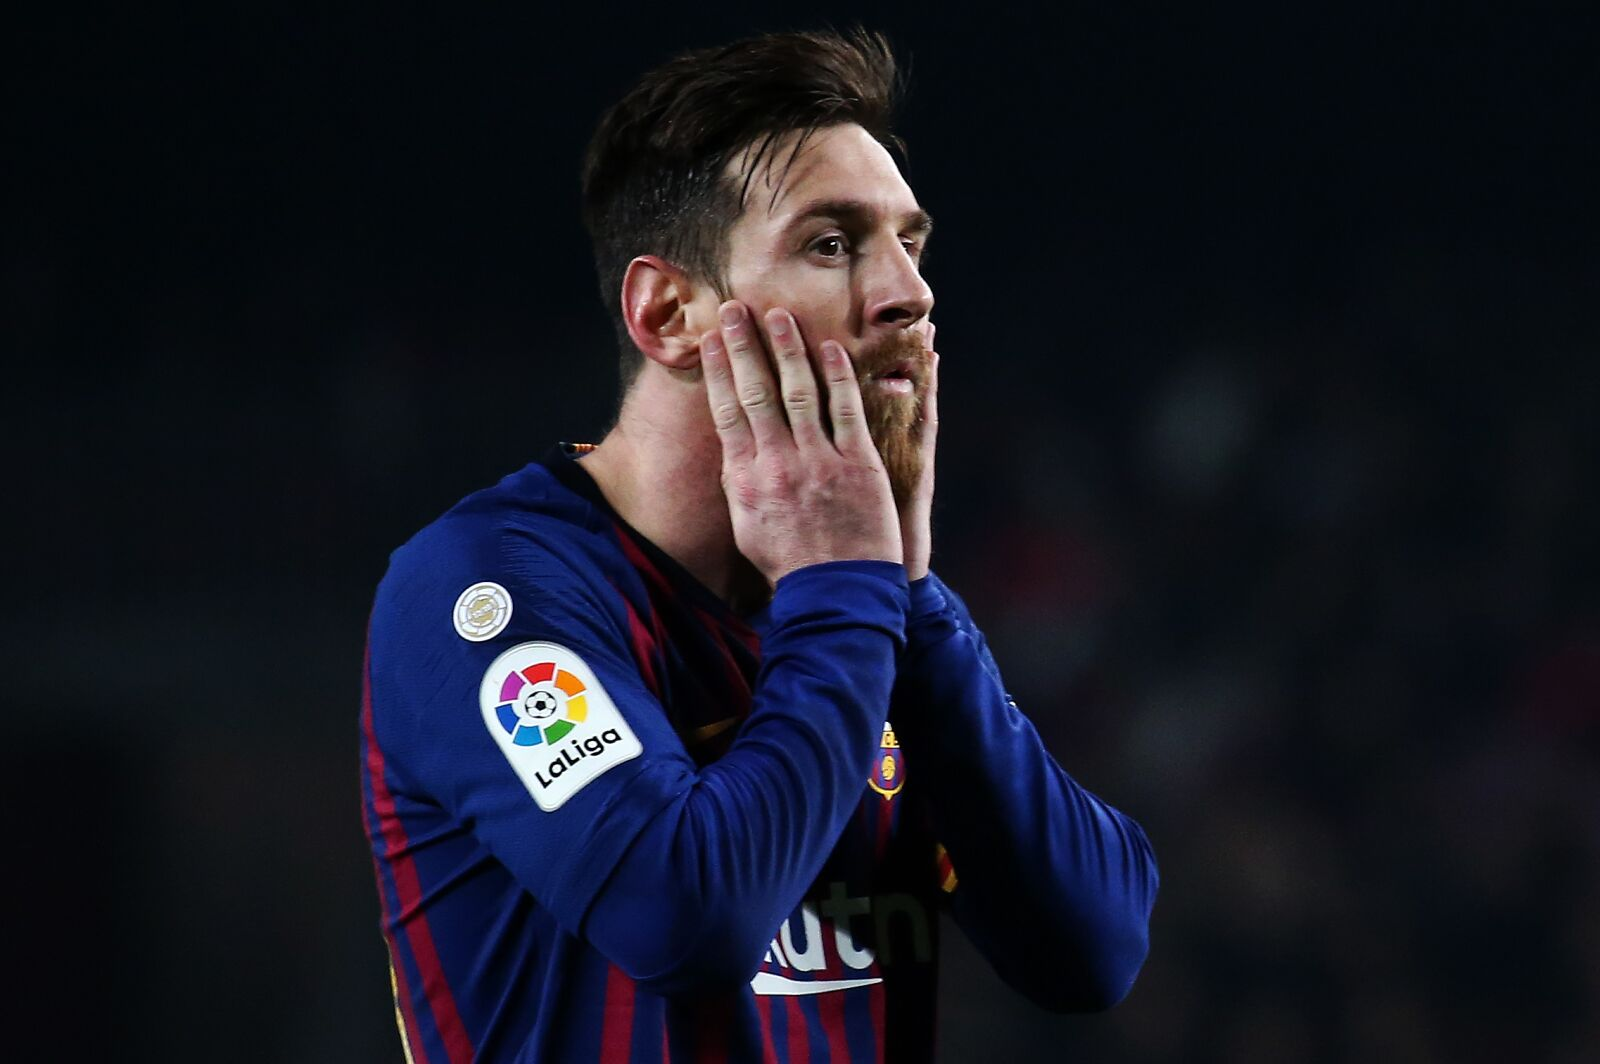 Leo Messi during the match between FC Barcelona and Valladolid CF, corresponding to the week 34 of the Liga Santander, played at the Camp Nou Stadium, on 16th February 2019, in Barcelona, Spain. (Photo BY Joan Valls/Urbanandsport /NurPhoto via Getty Images)